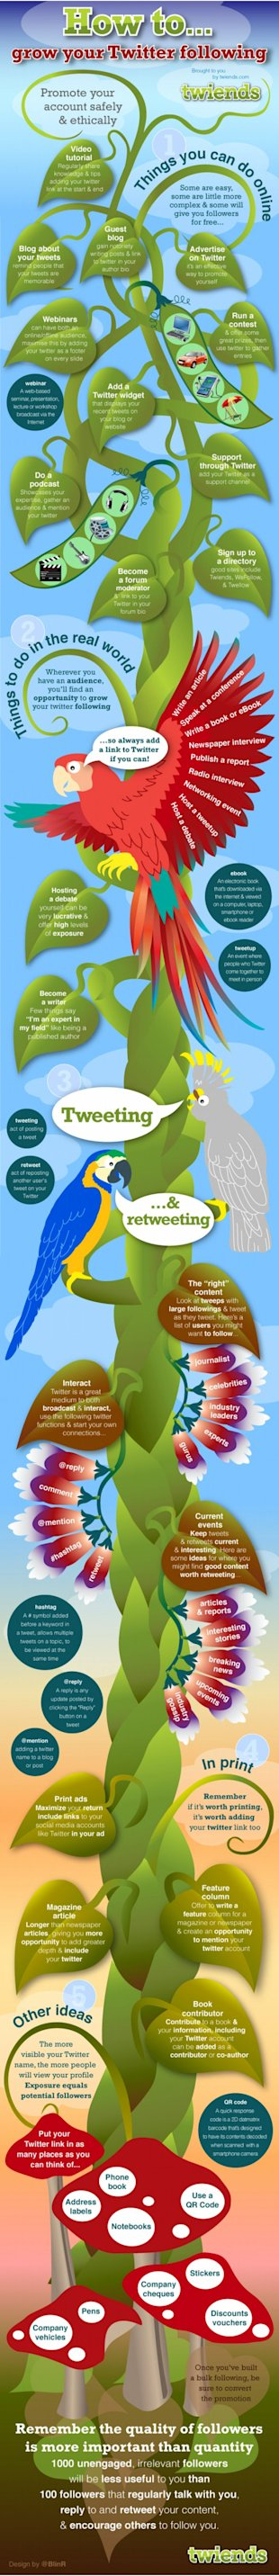 40 Ways To Increase Your Twitter Followers (Infographic) image How to Increase your Twitter Followers